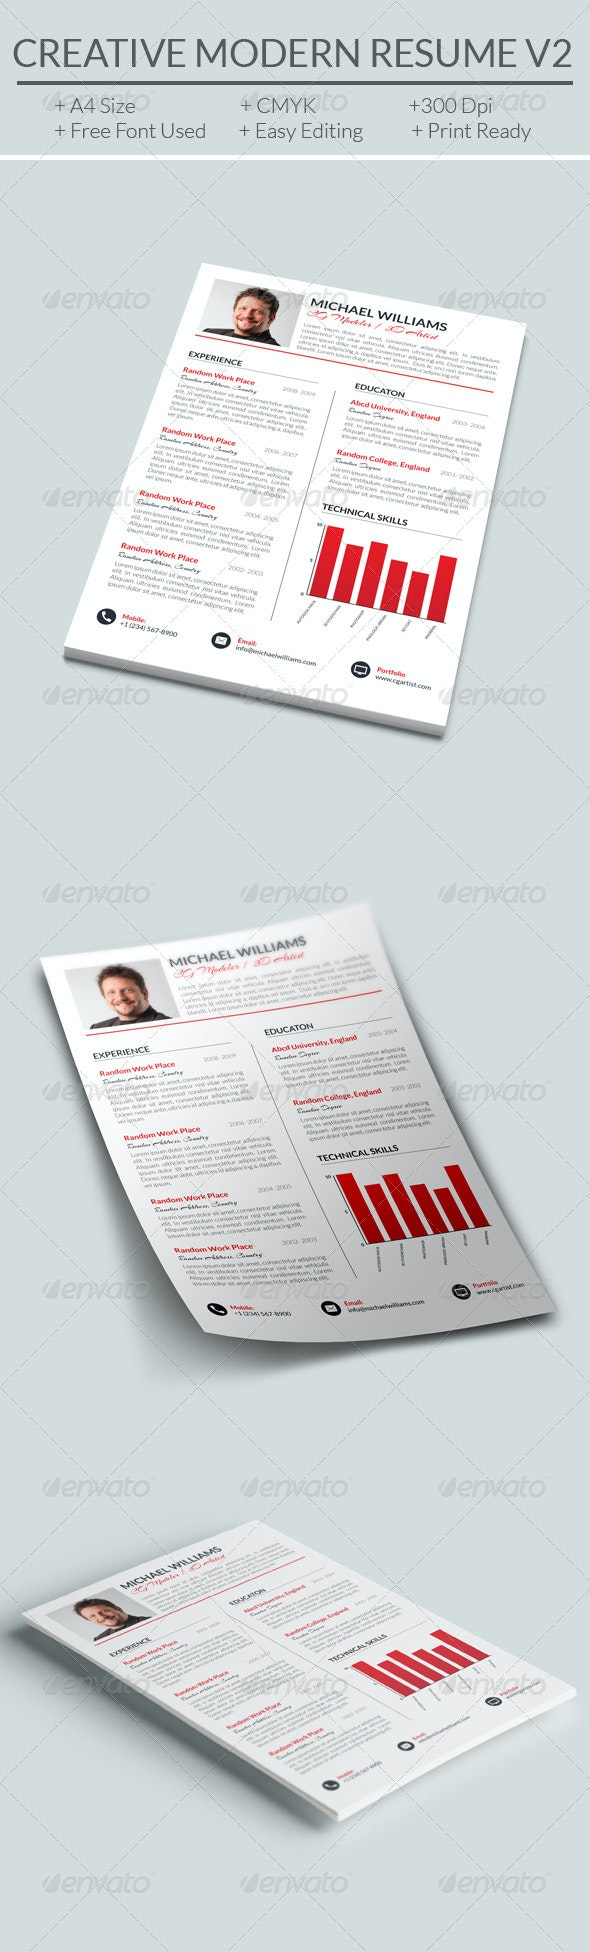 Creative Modern Resume V2 - Resumes Stationery